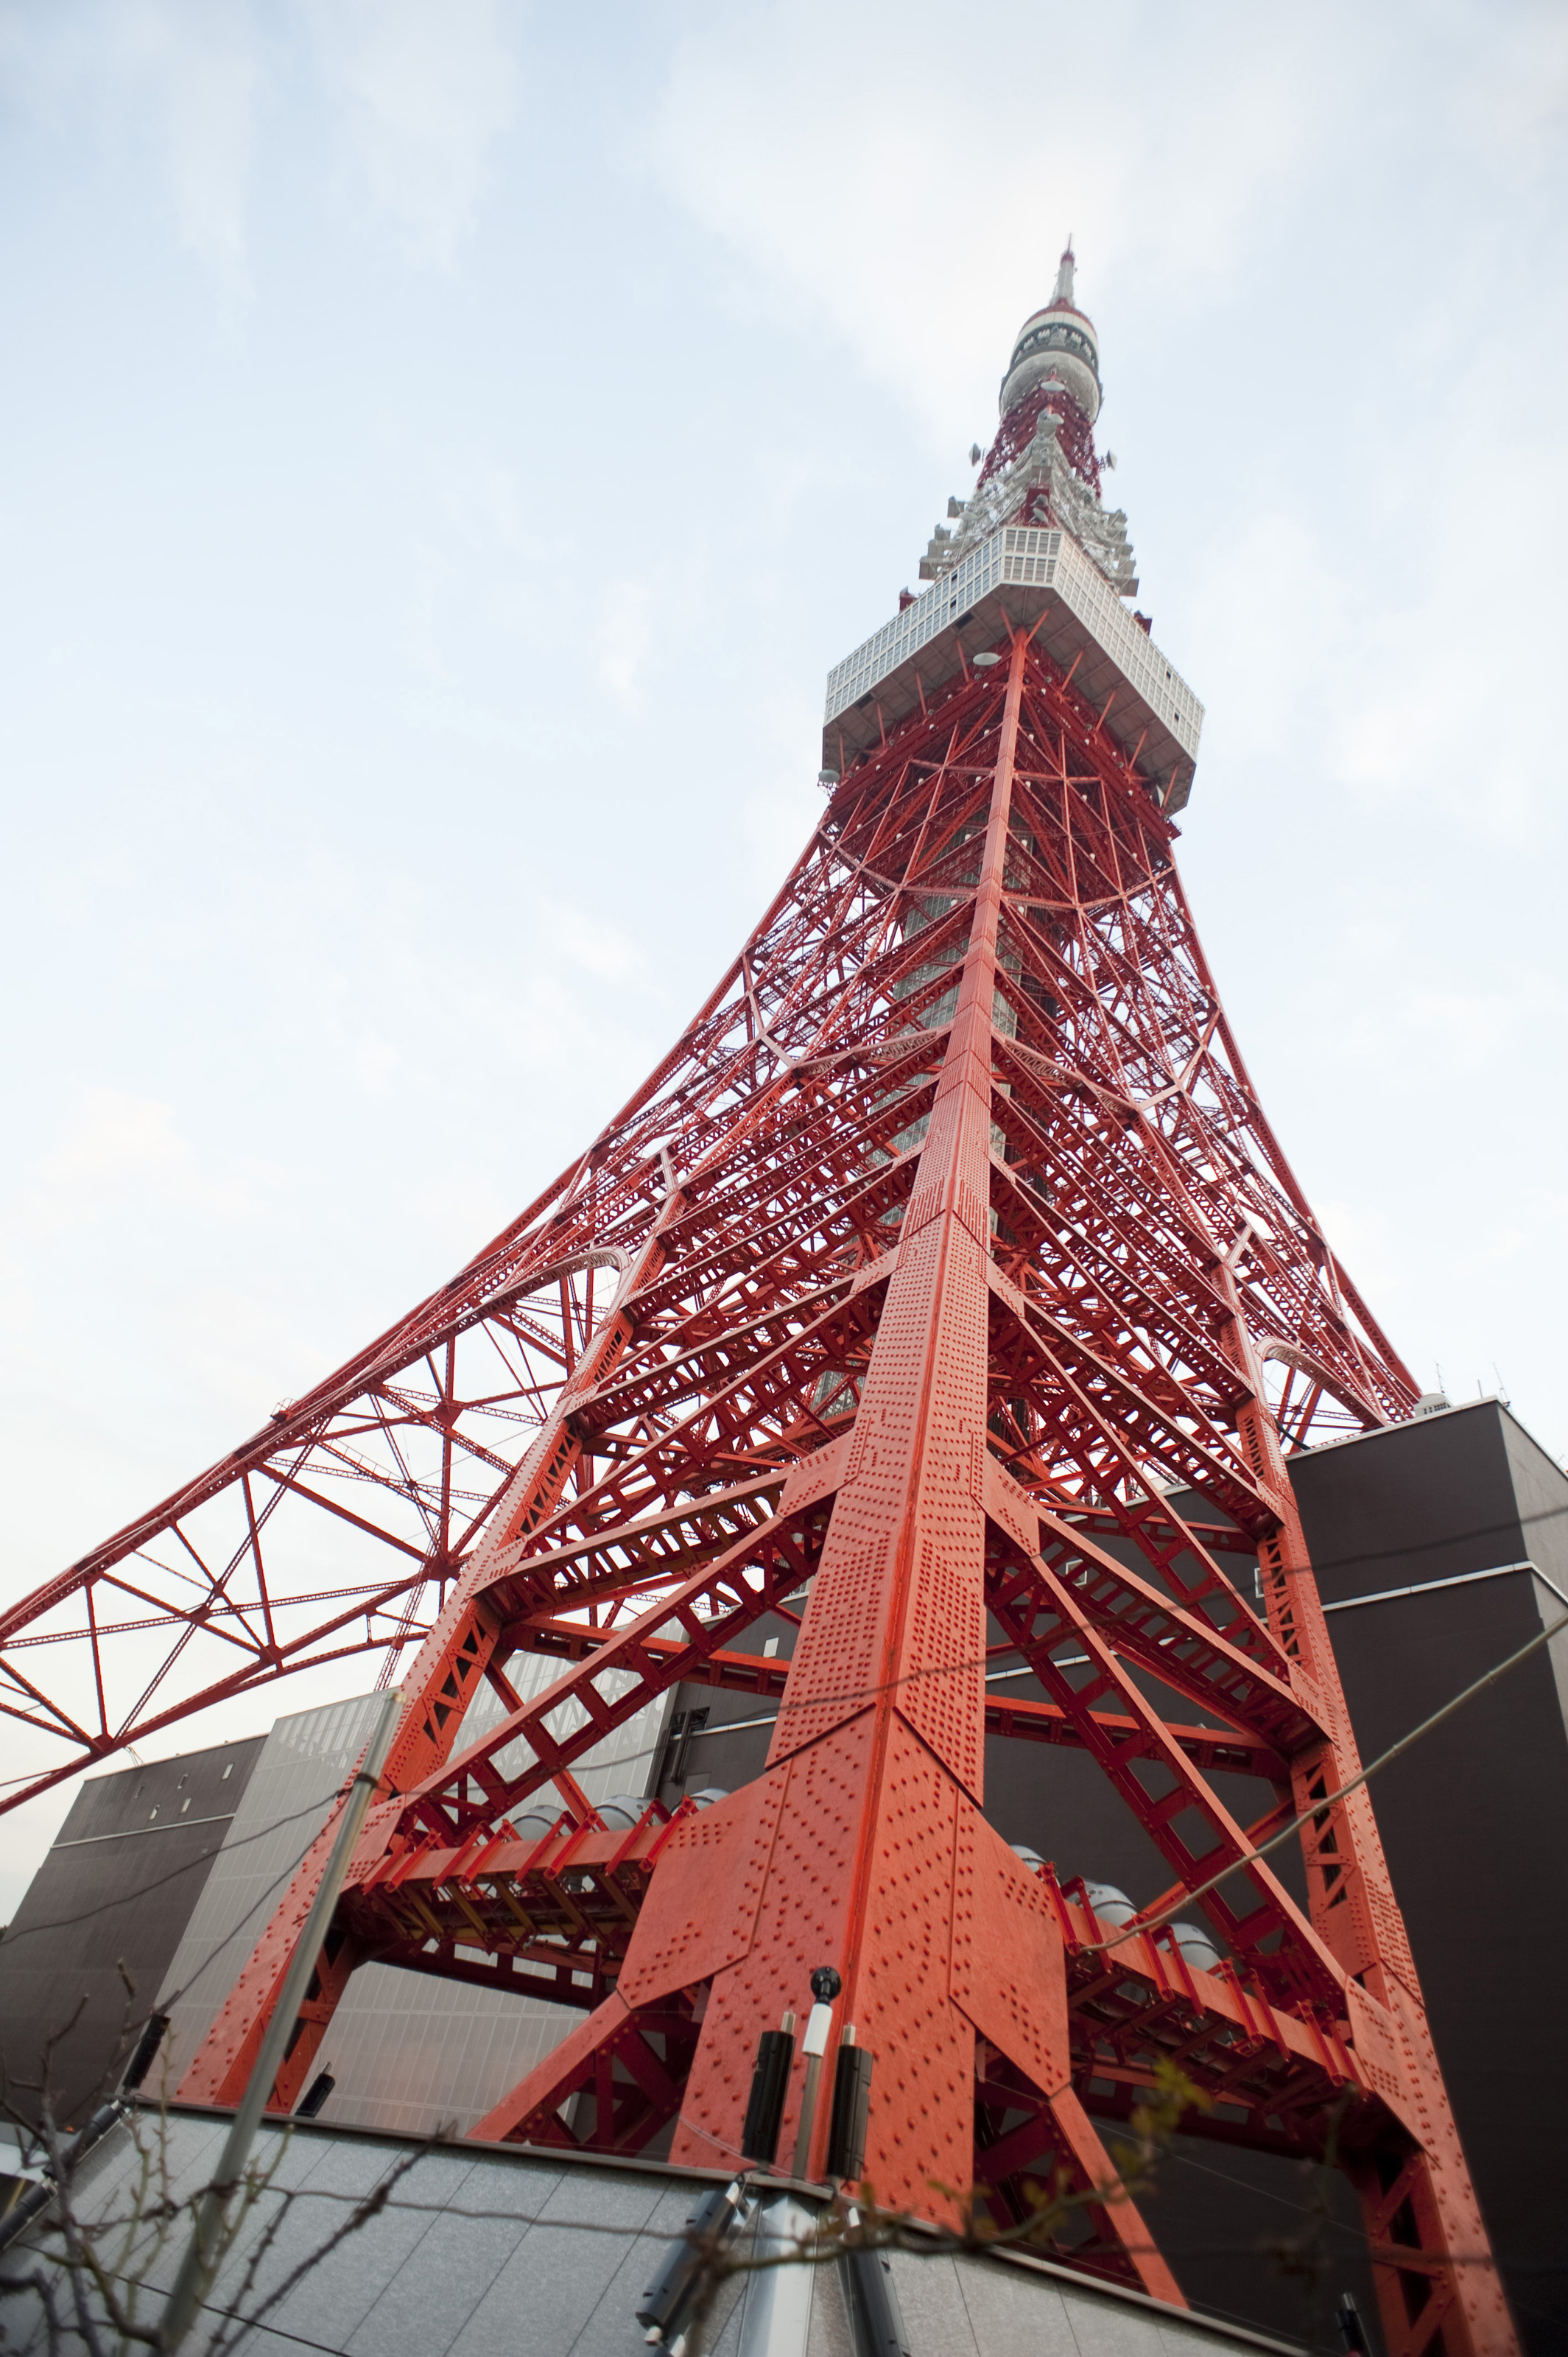 Free Stock Photo 6135 tokyo tv tower | freeimageslive